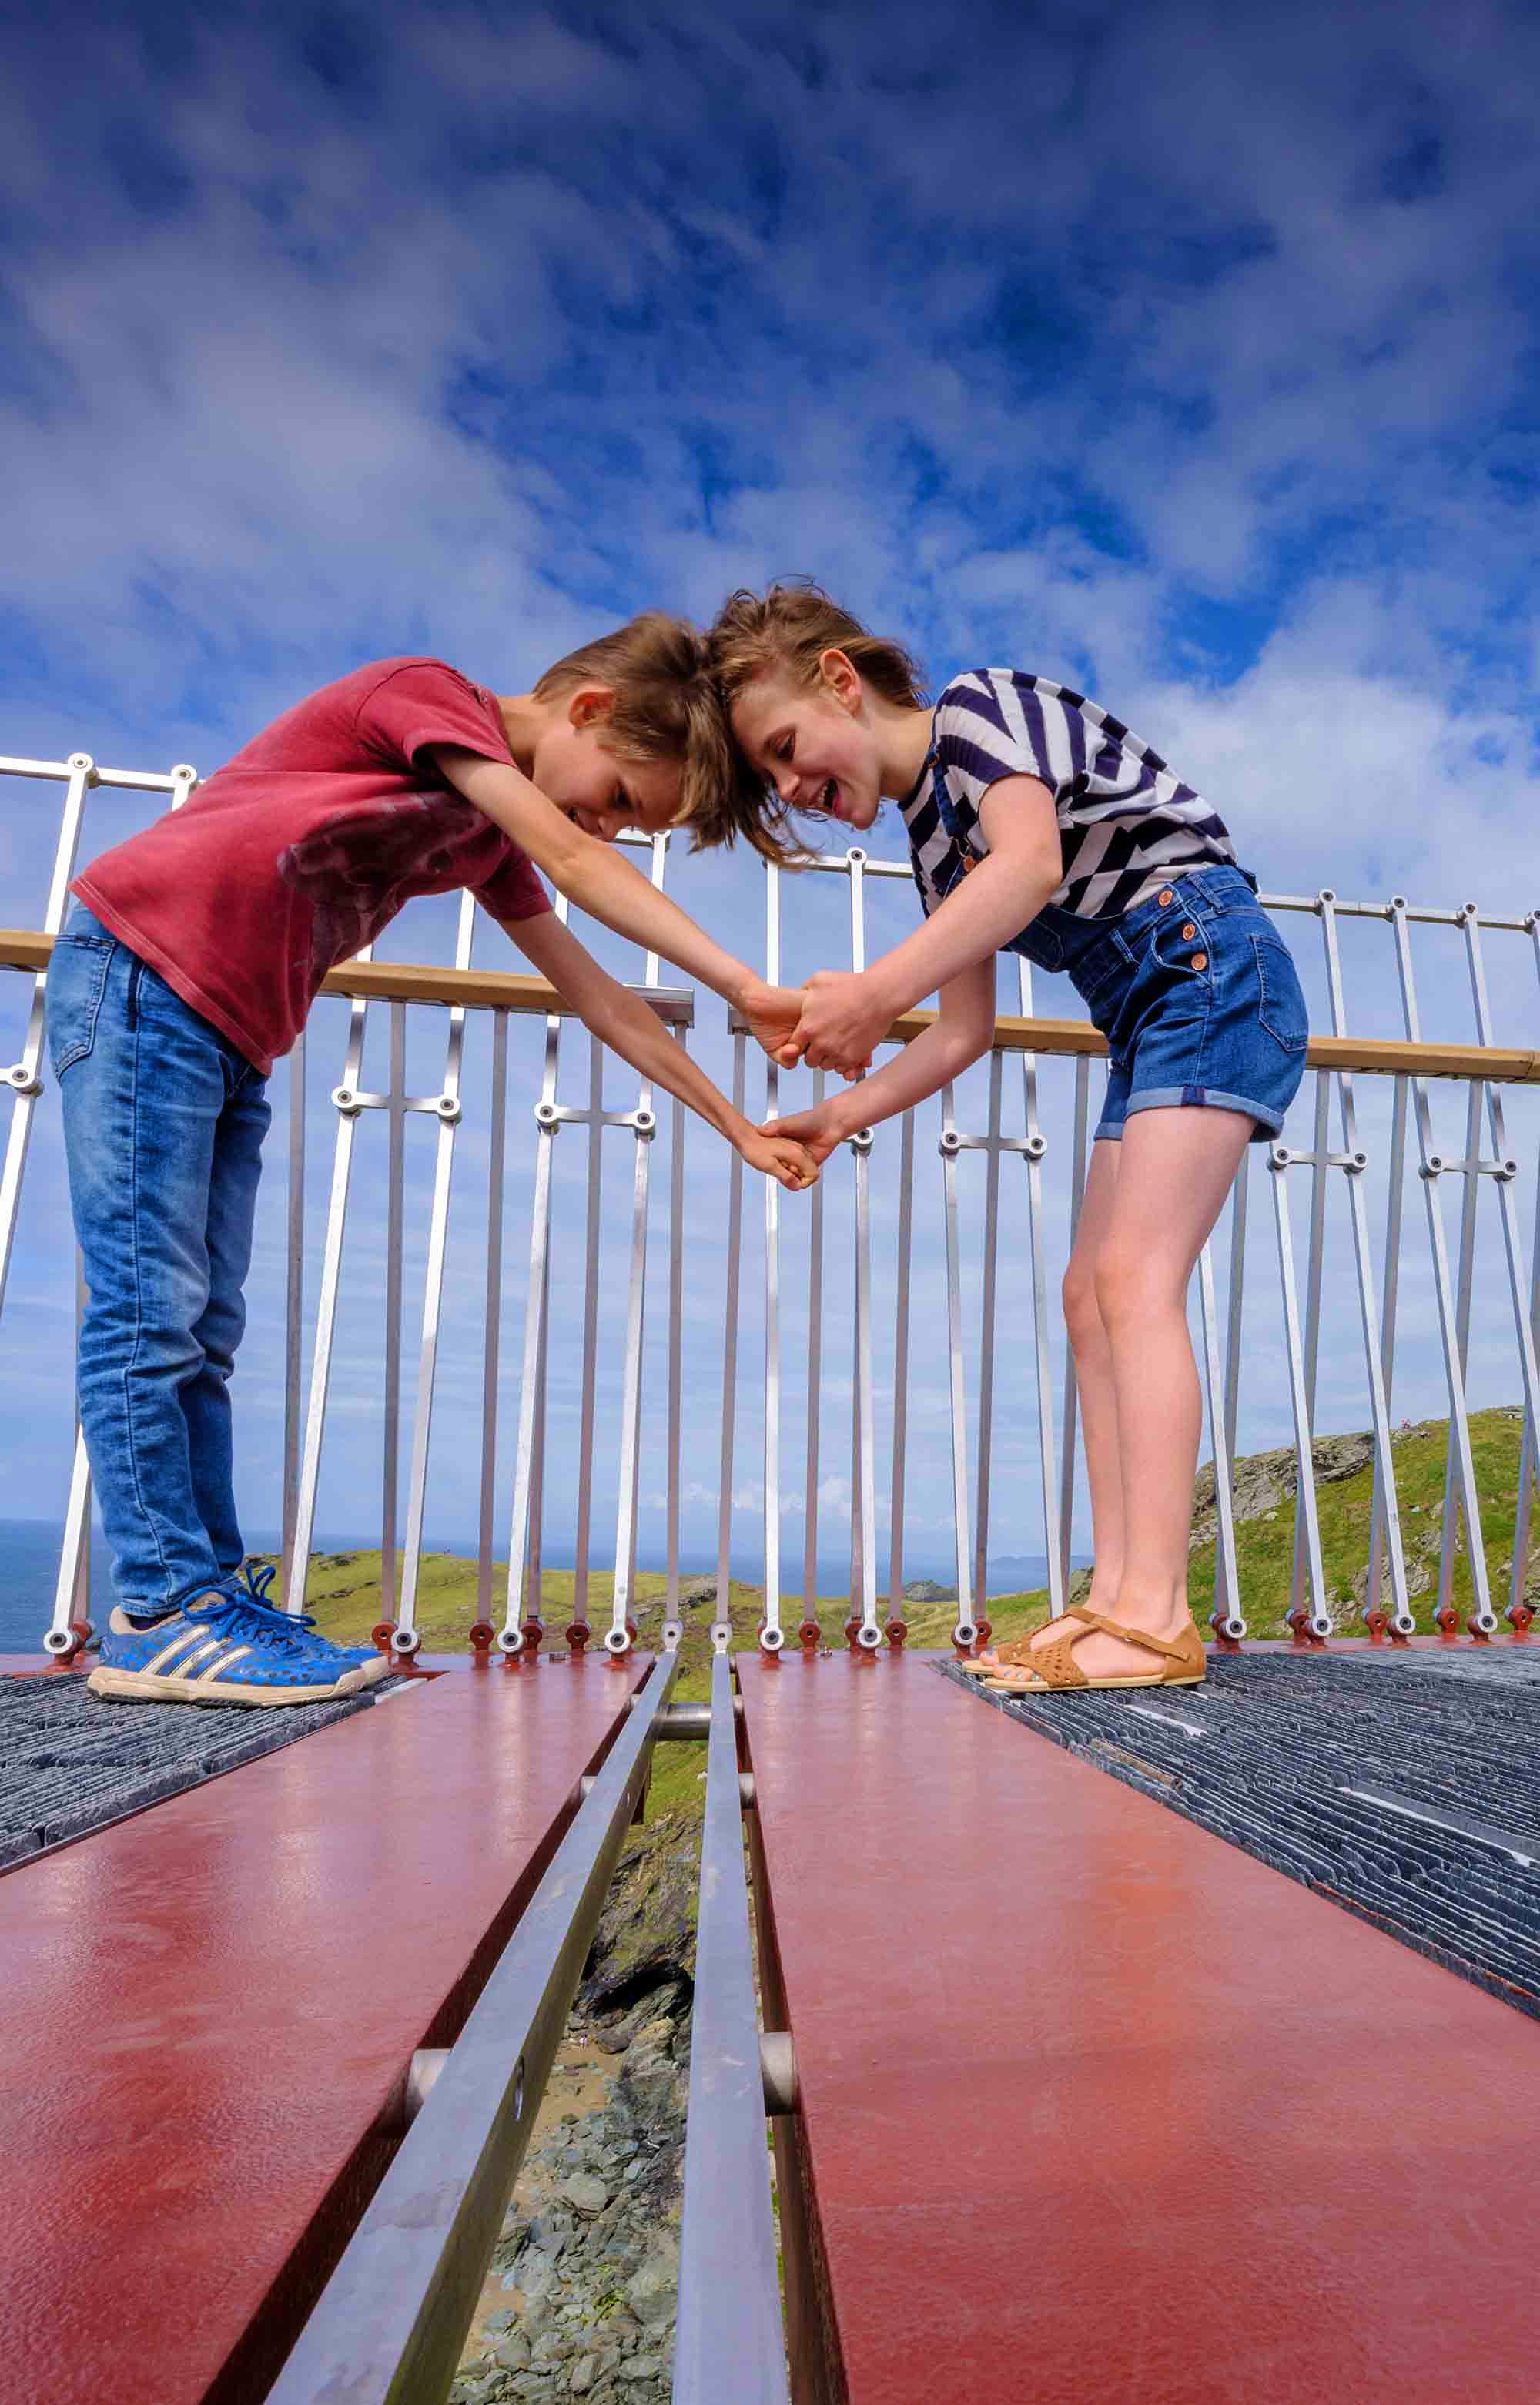 Children meet in the middle of the new bridge linking Tintagel Castle with the mainland